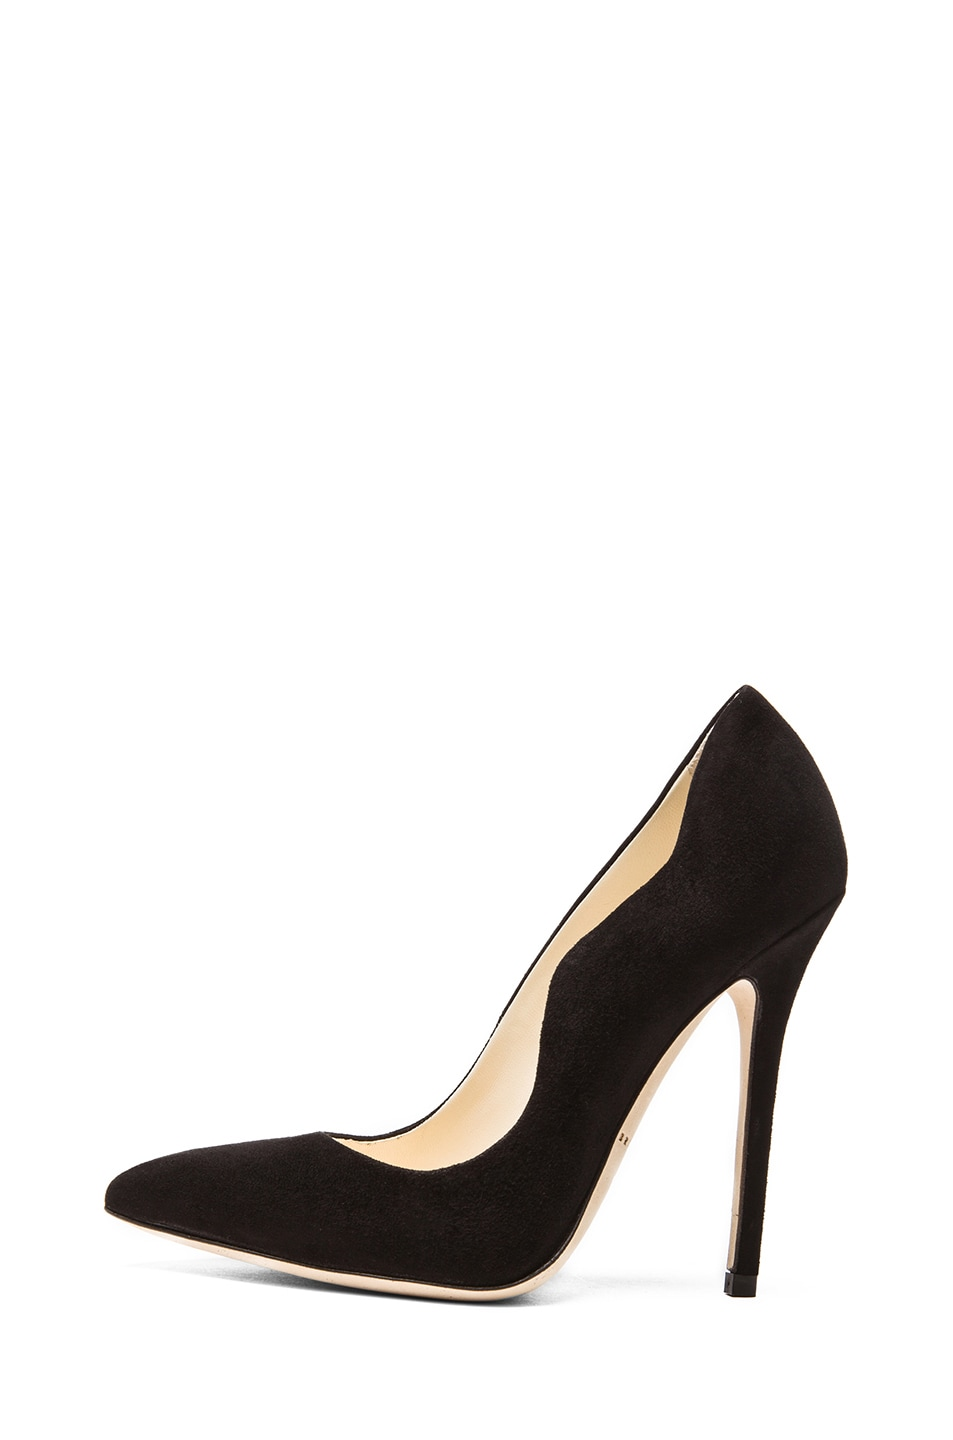 Image 1 of Brian Atwood Besame Suede Pumps in Black Suede